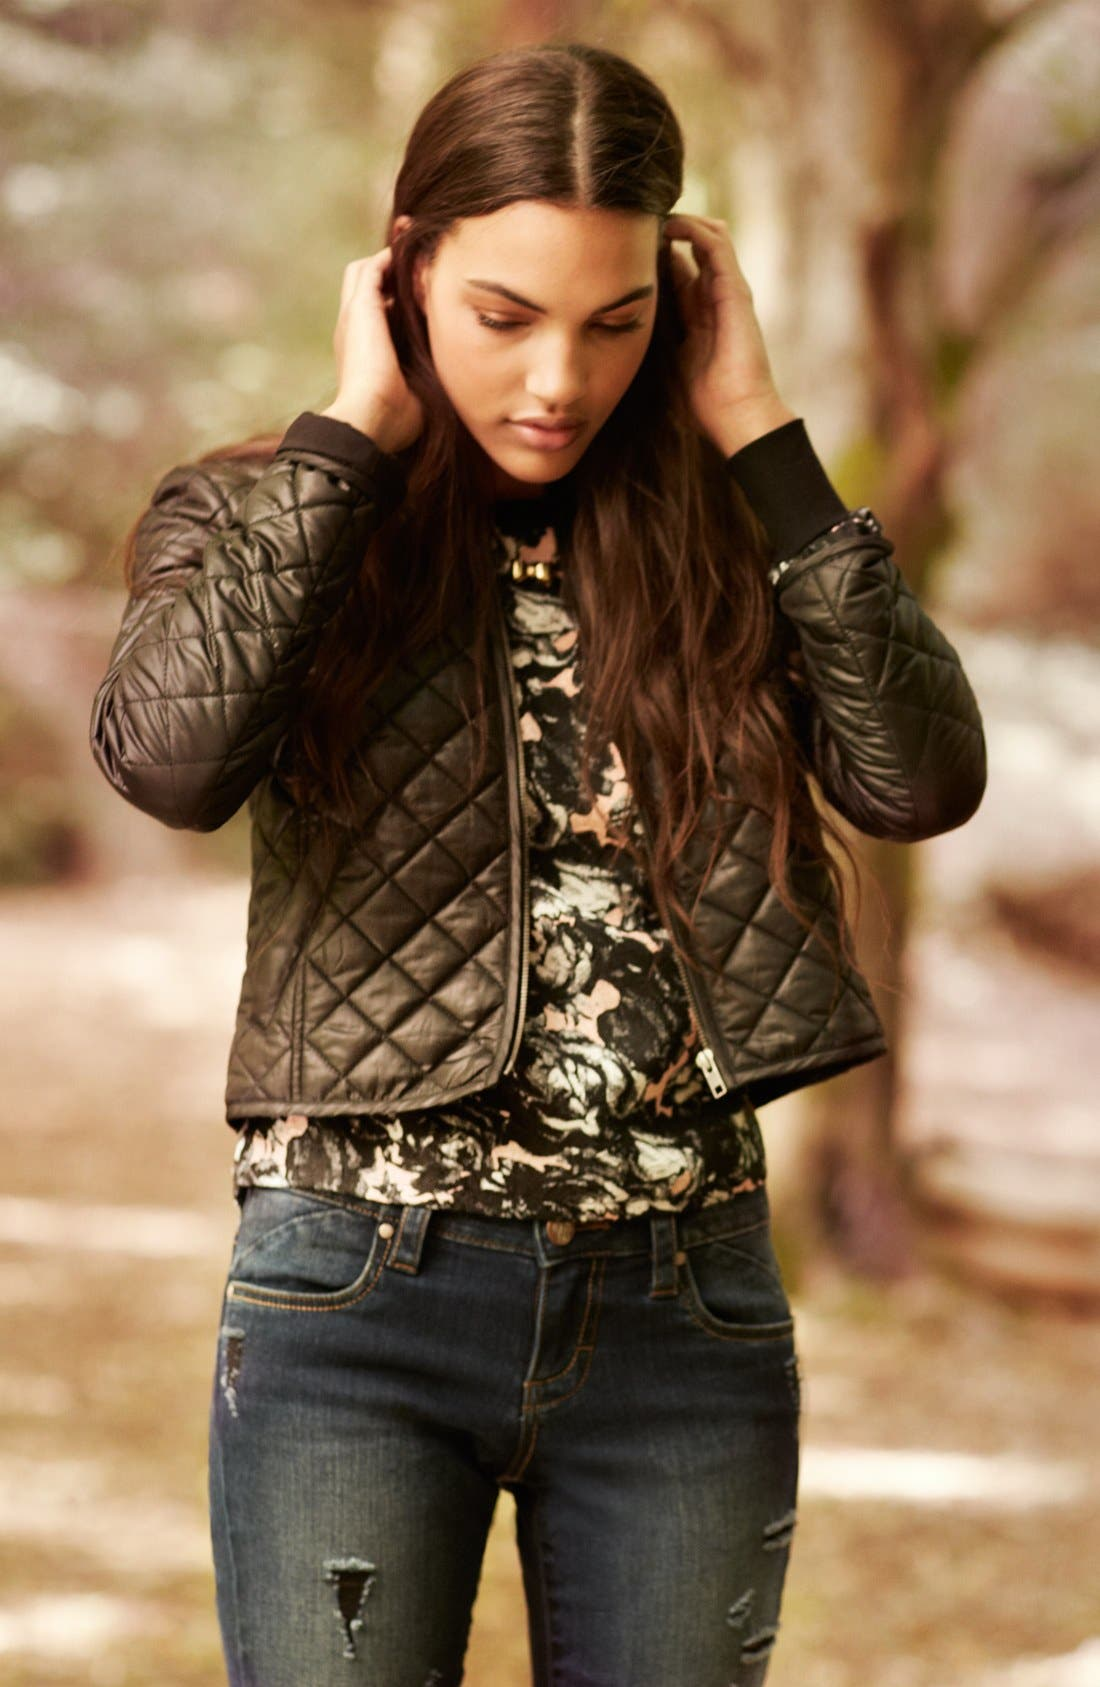 Alternate Image 1 Selected - Frenchi® Jacket, Elodie Top & STS Blue Jeans